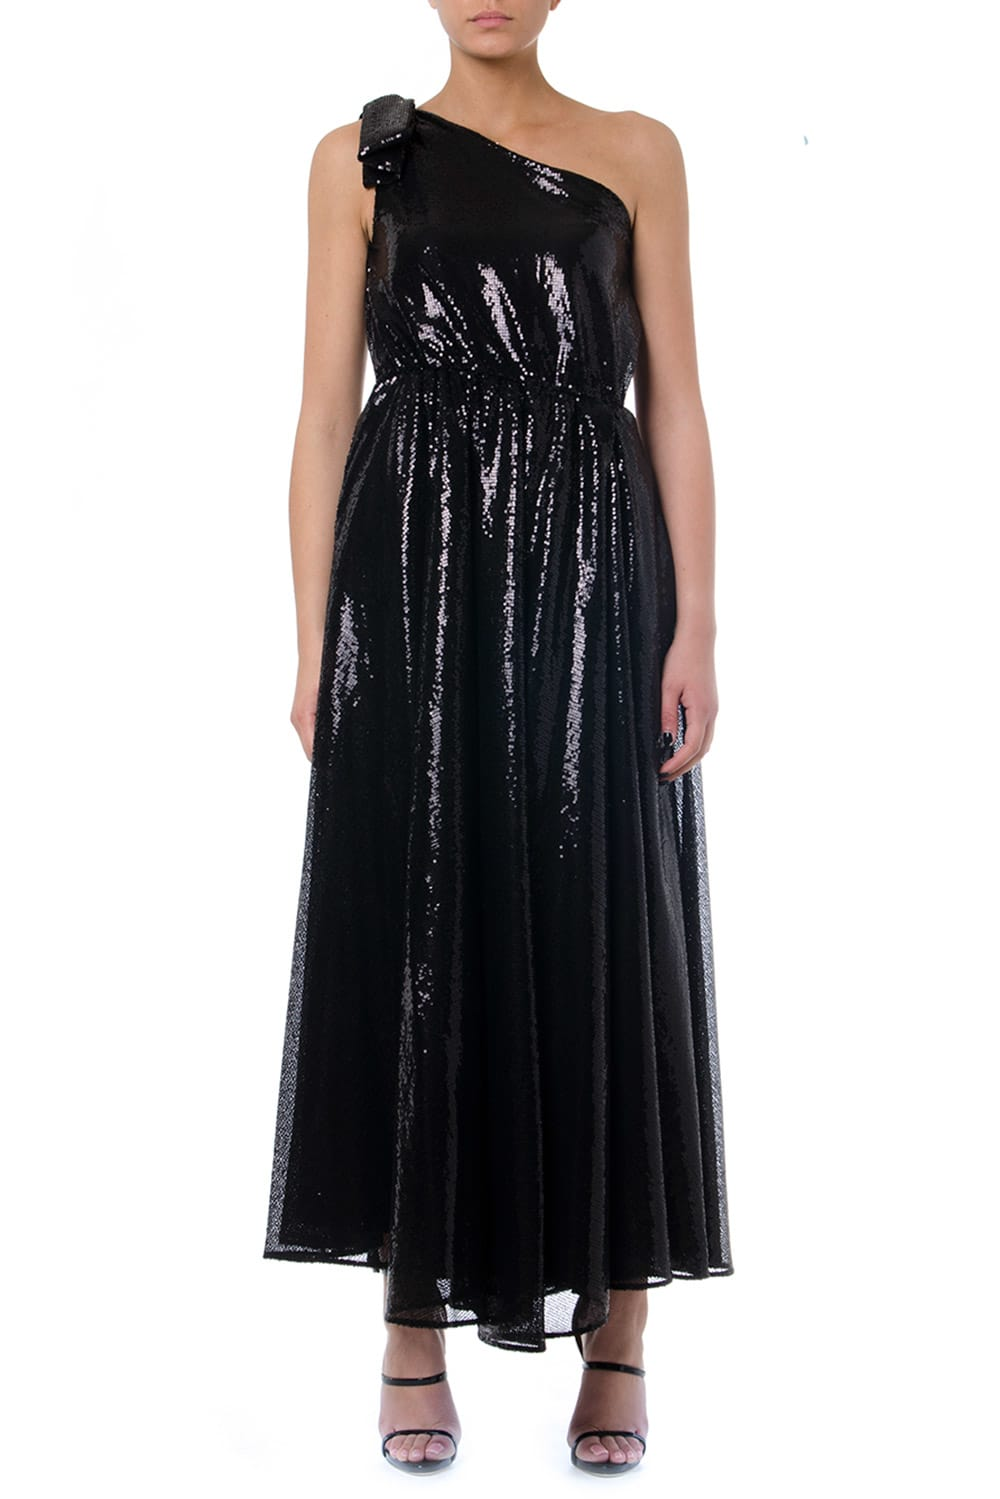 MSGM Black One Shoulder Long Dress